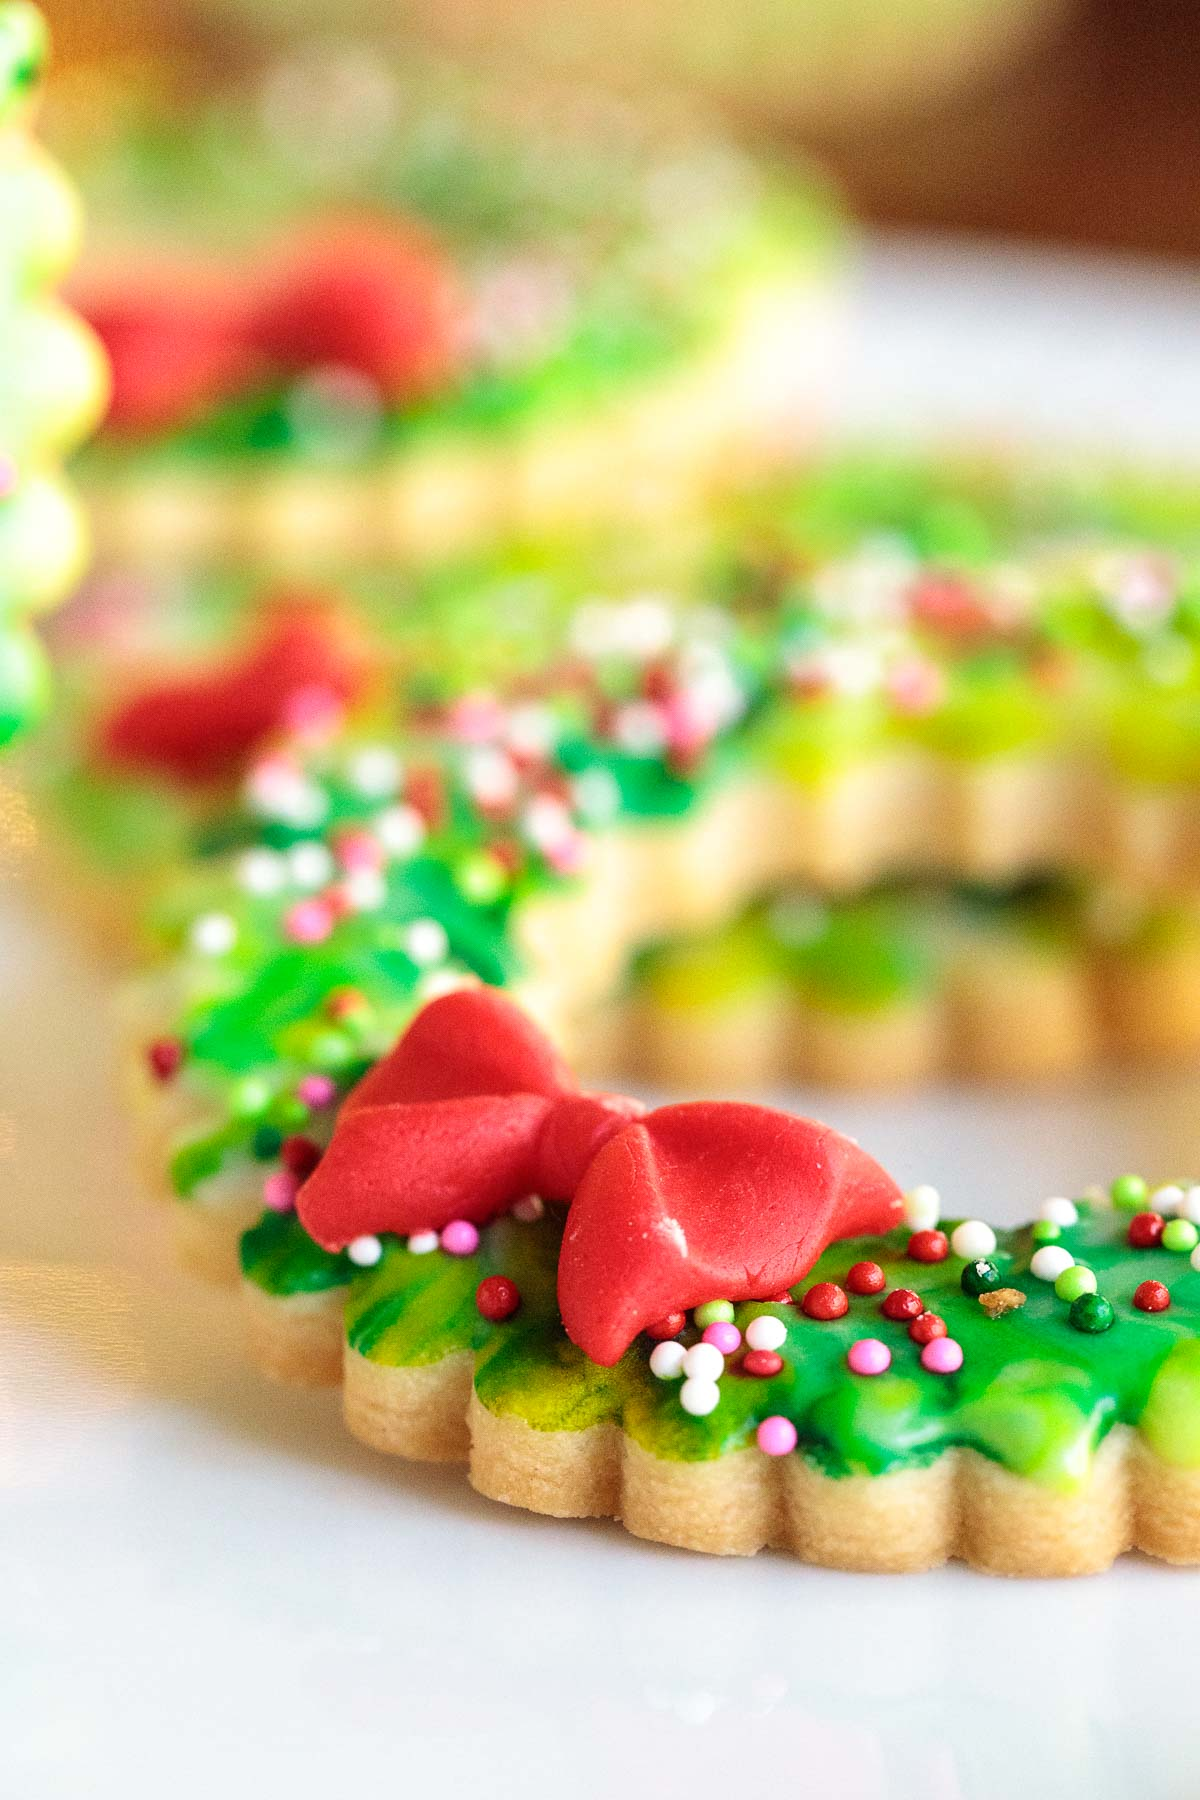 Ultra closeup photo of a fondant bow on a Christmas Wreath Shortbread Cookie.